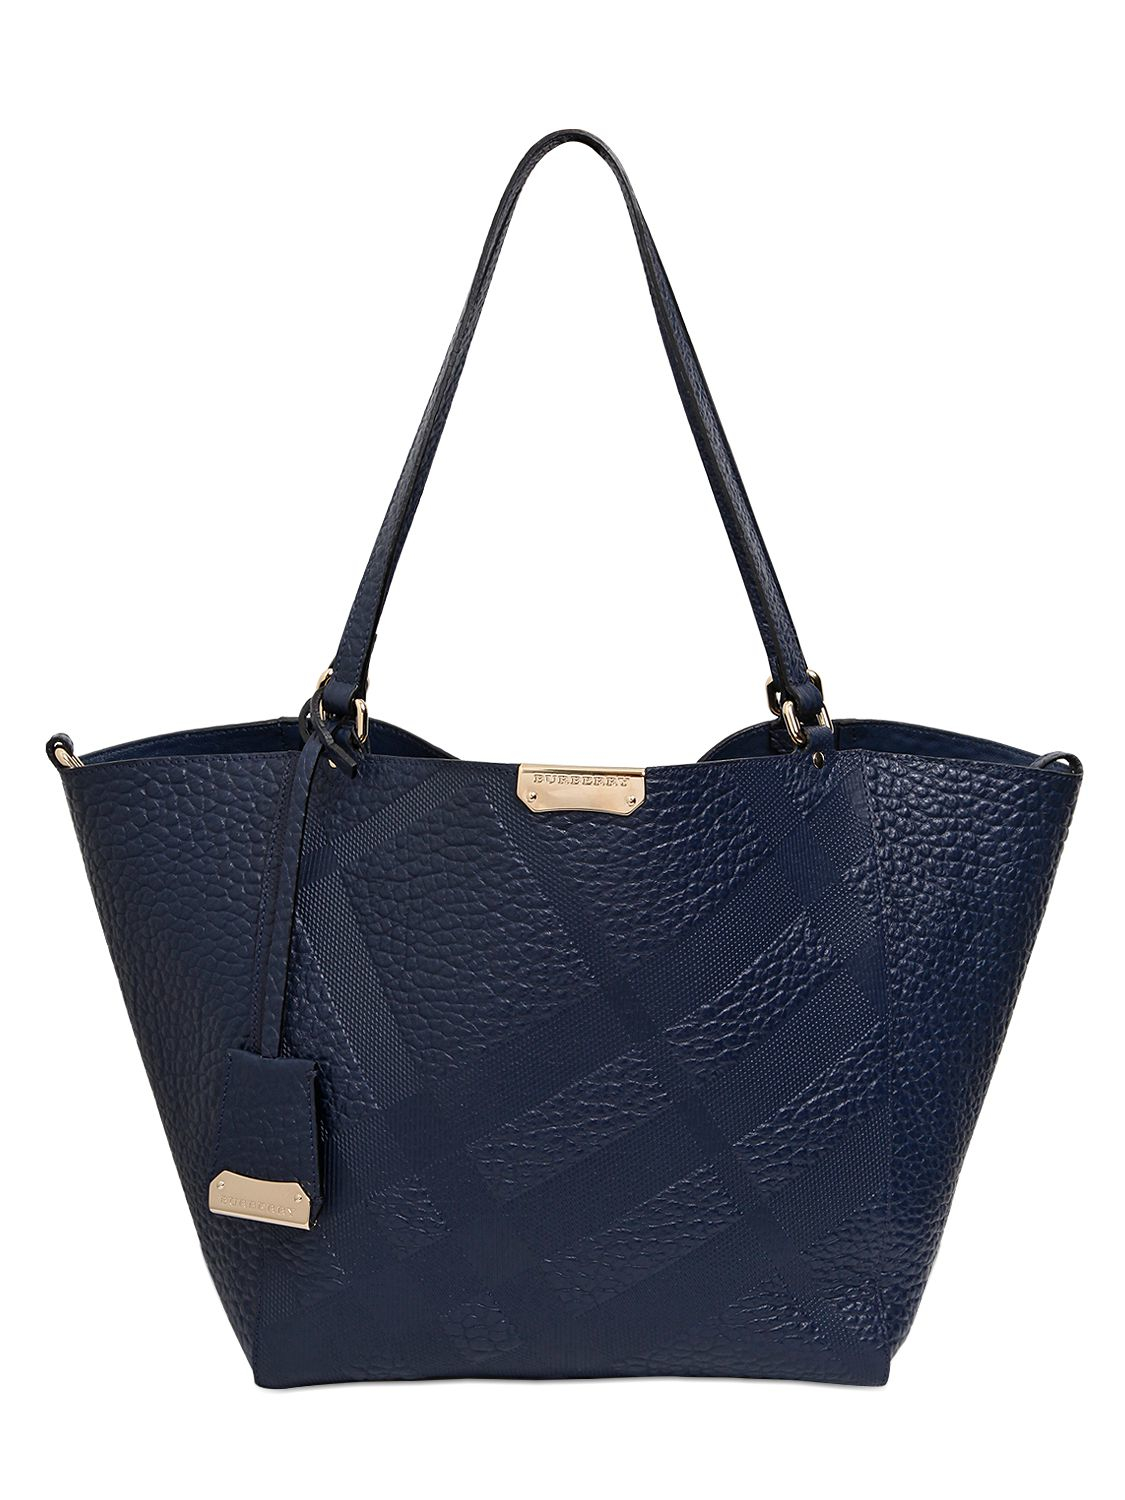 c158b2cff5f9 Burberry Canterbury Elephant Embossed Leather Bag In Blue Lyst